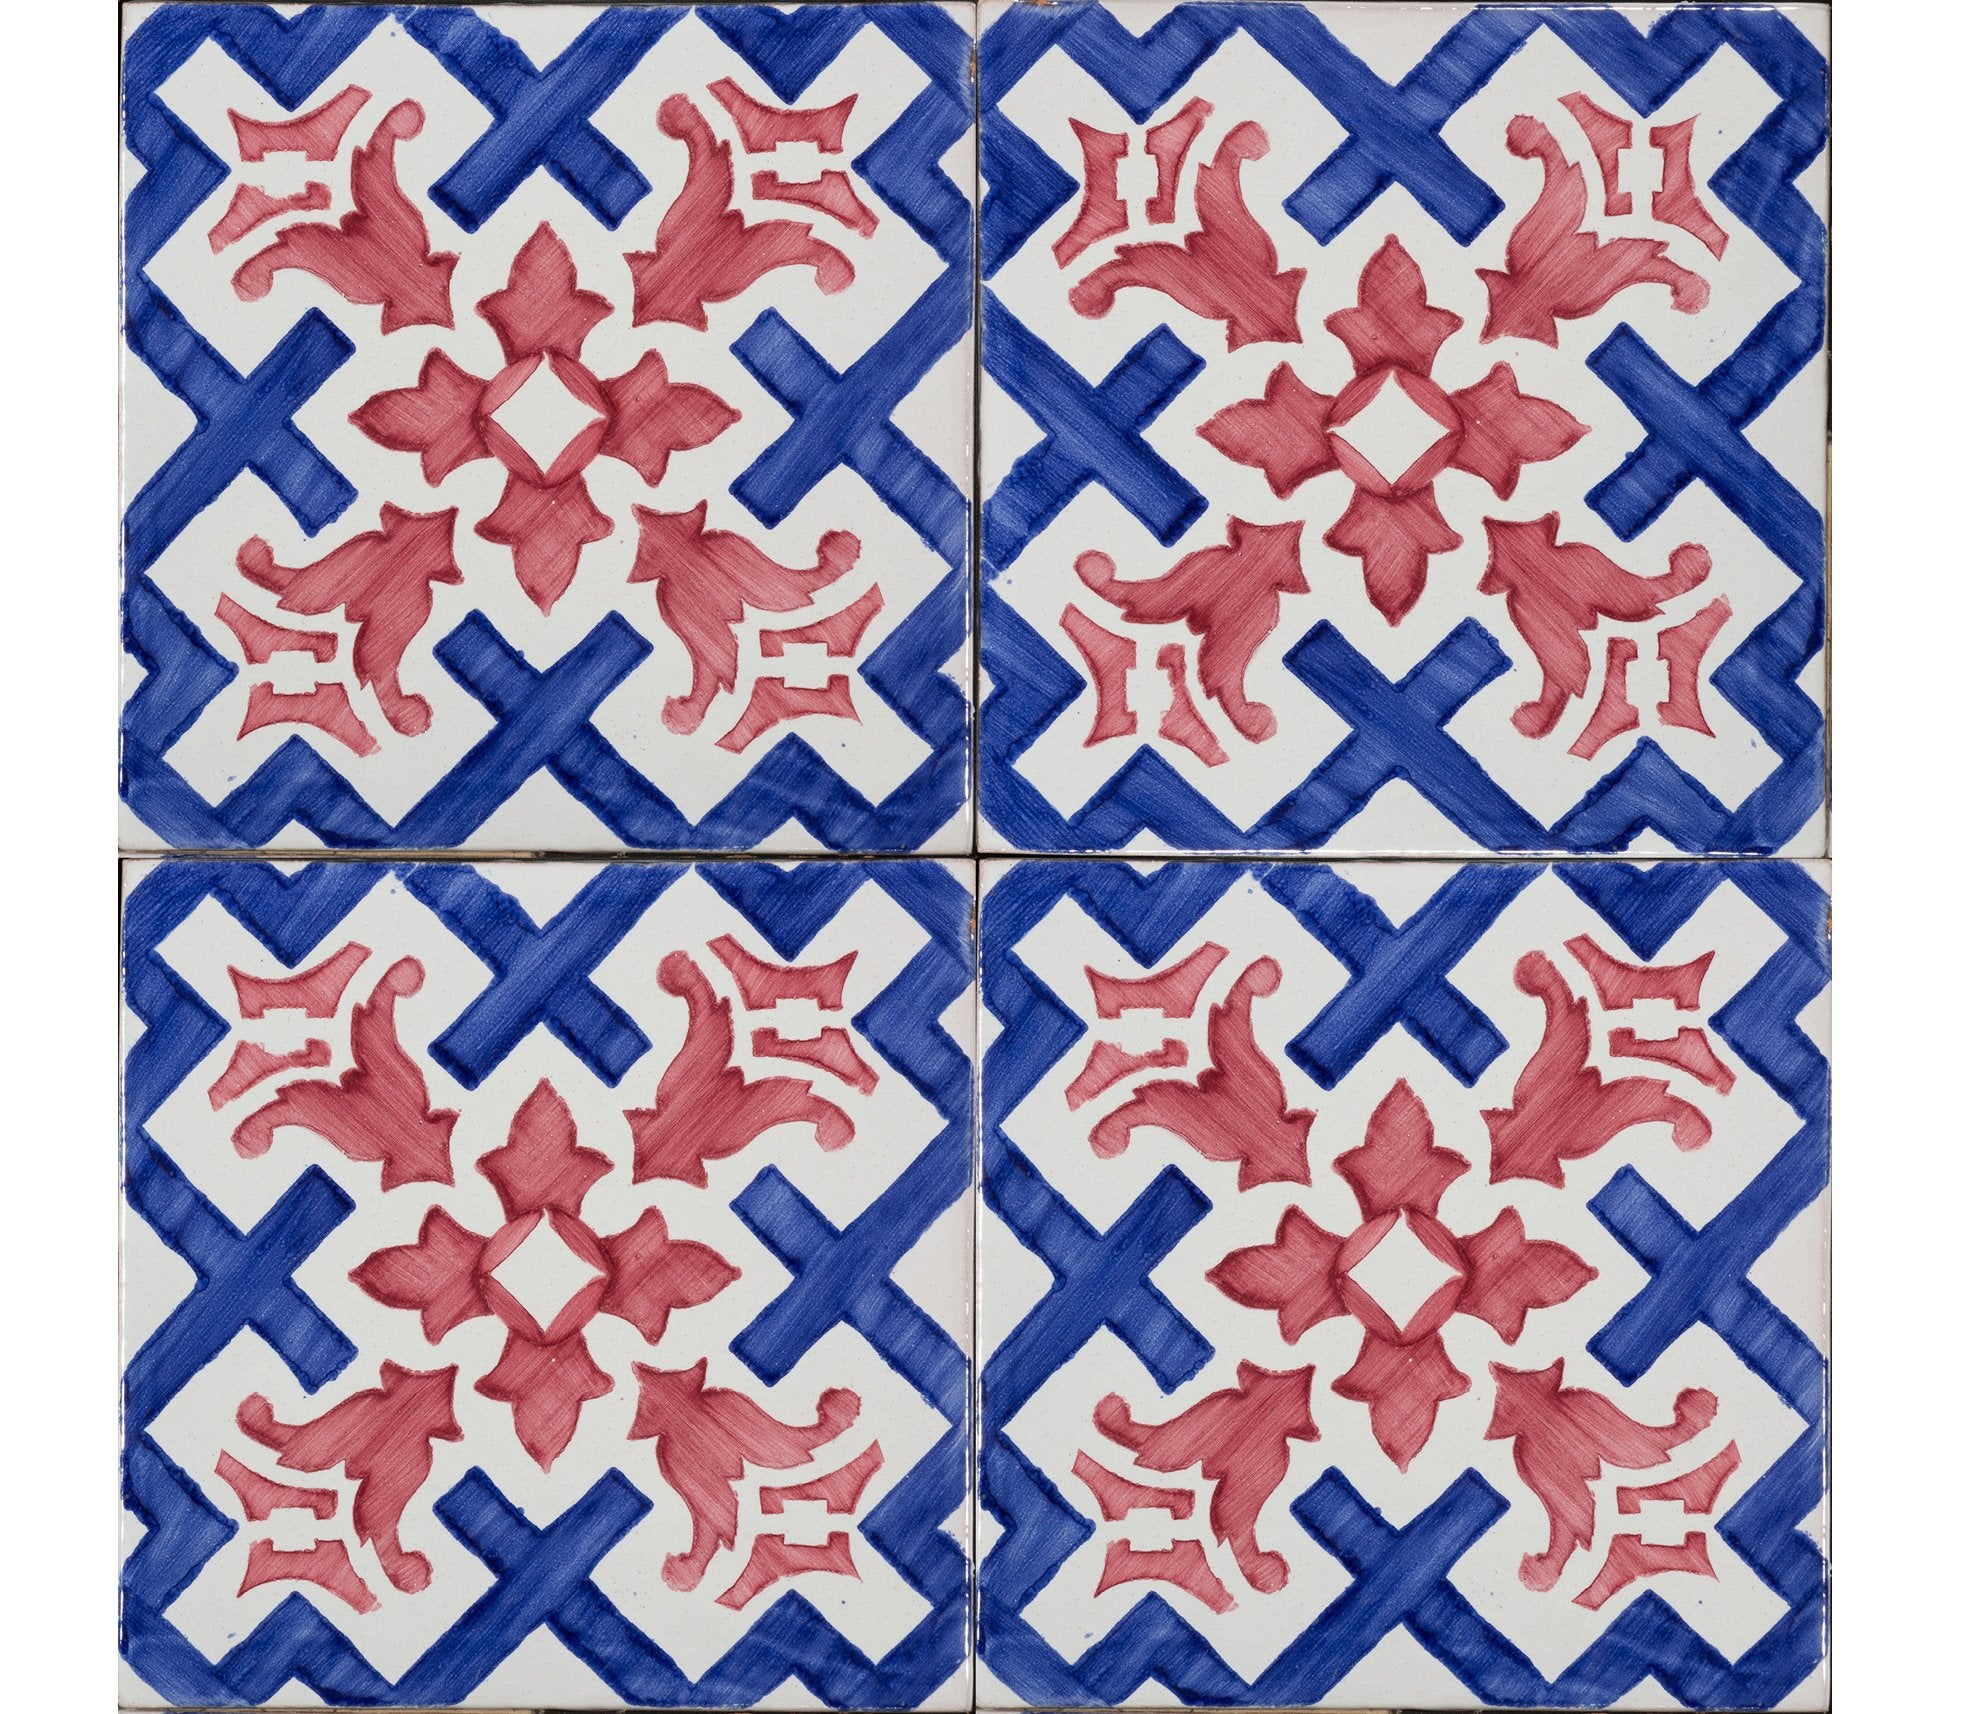 Series S Handpainted Tiles Product Image 41